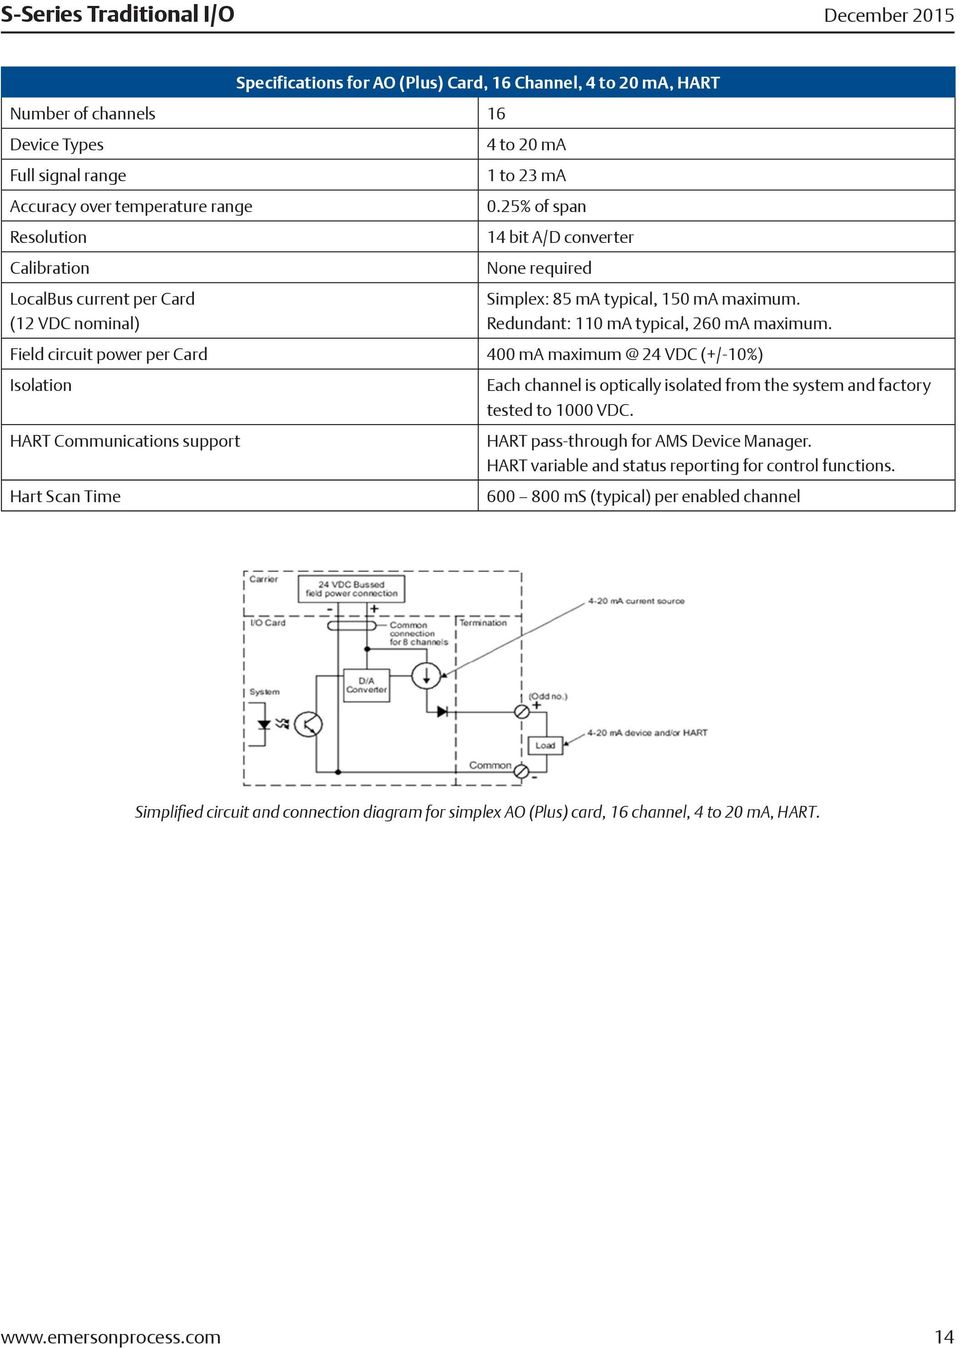 Deltav S Series Traditional I O Pdf 20ma To Hart Converter 4 On Wiring Diagram For 20 Ma 14 Field Circuit Power Per Card 400 Maximum 24 Vdc 10